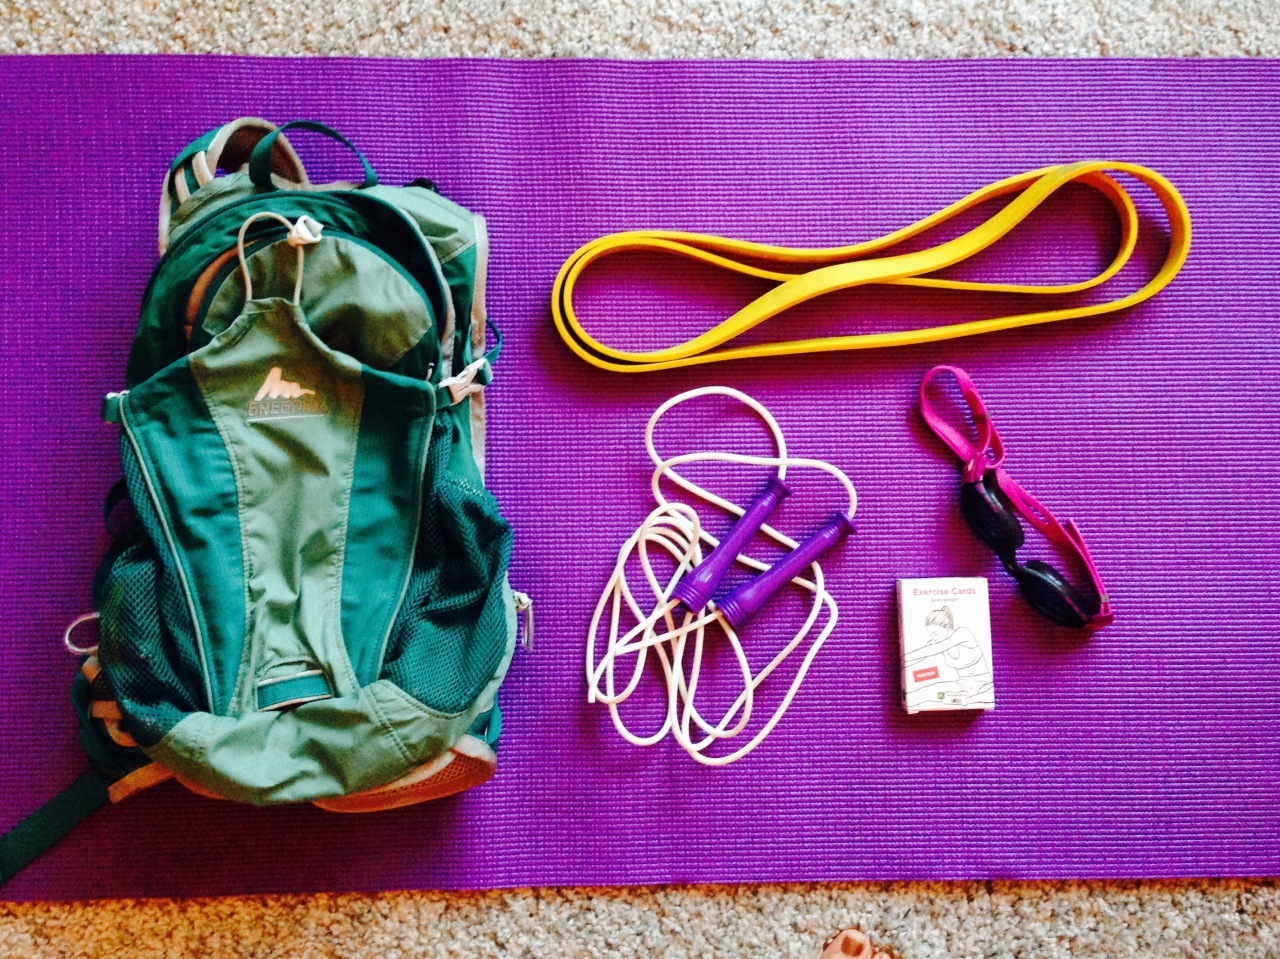 Top 5 pieces of portable fitness equipment